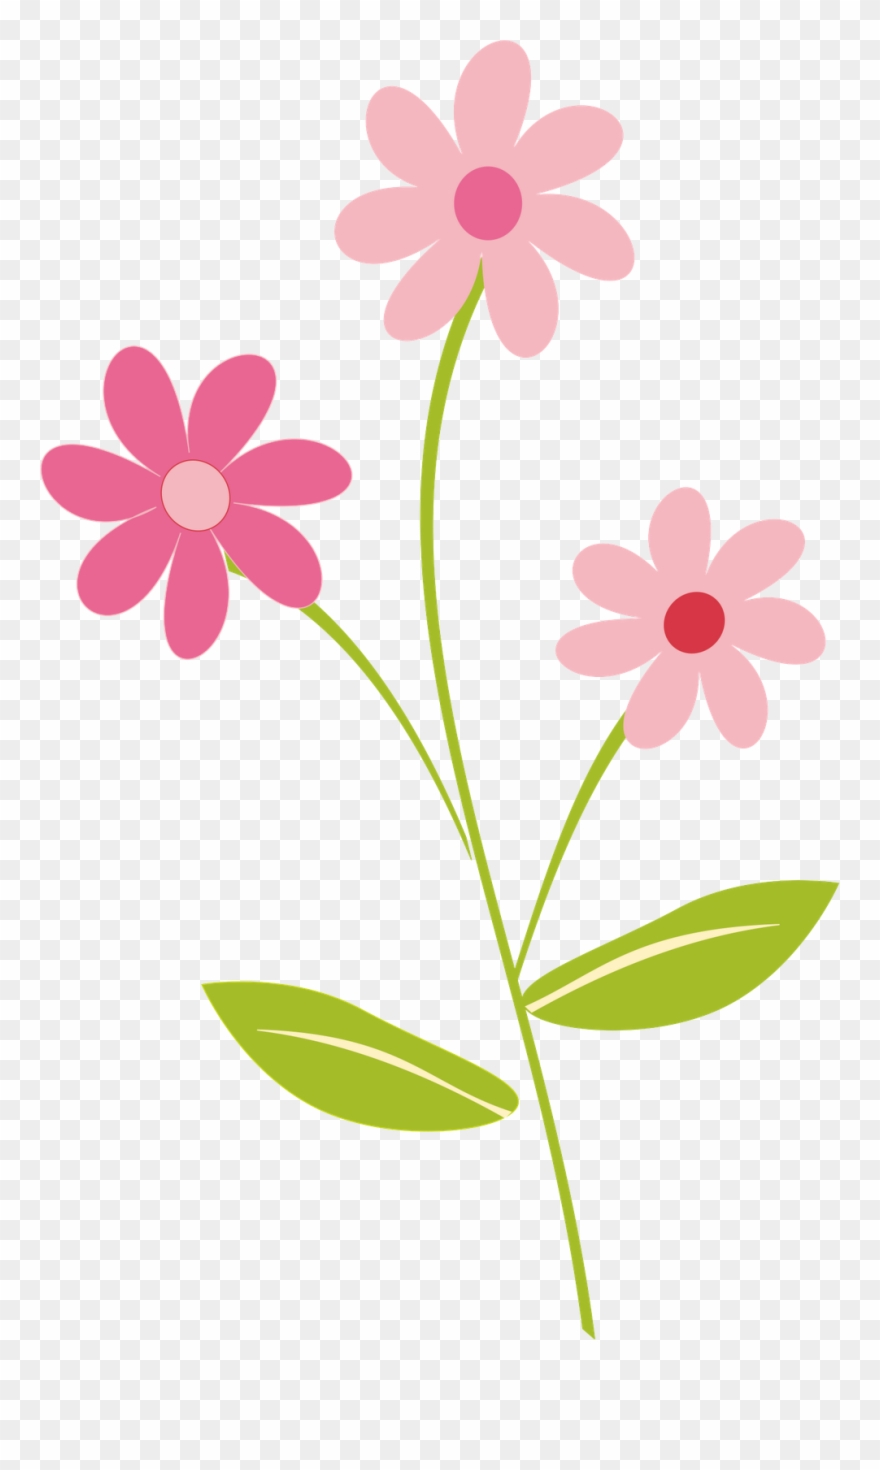 Slowers clipart clipart library library Flowers Border Clipart Png - Clipart Flower Border Png ... clipart library library